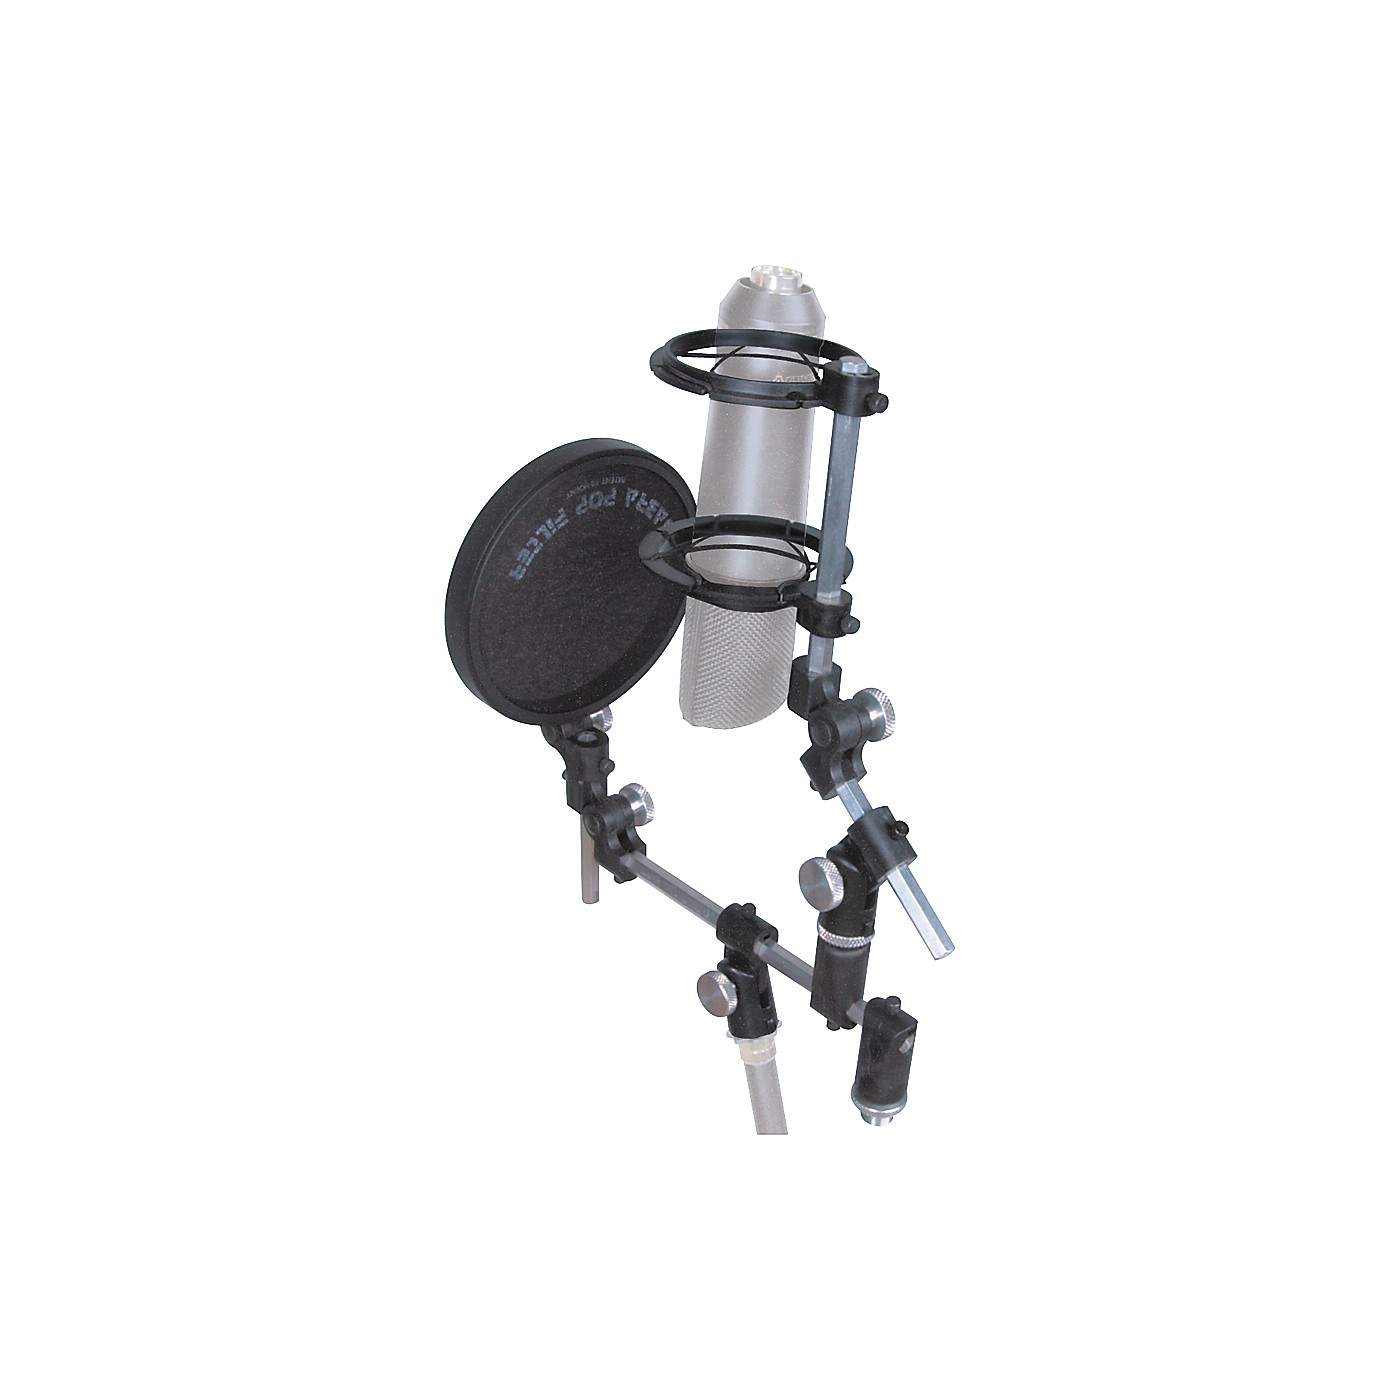 Sabra Som Universal Microphone Shockmount with Pop Filter thumbnail